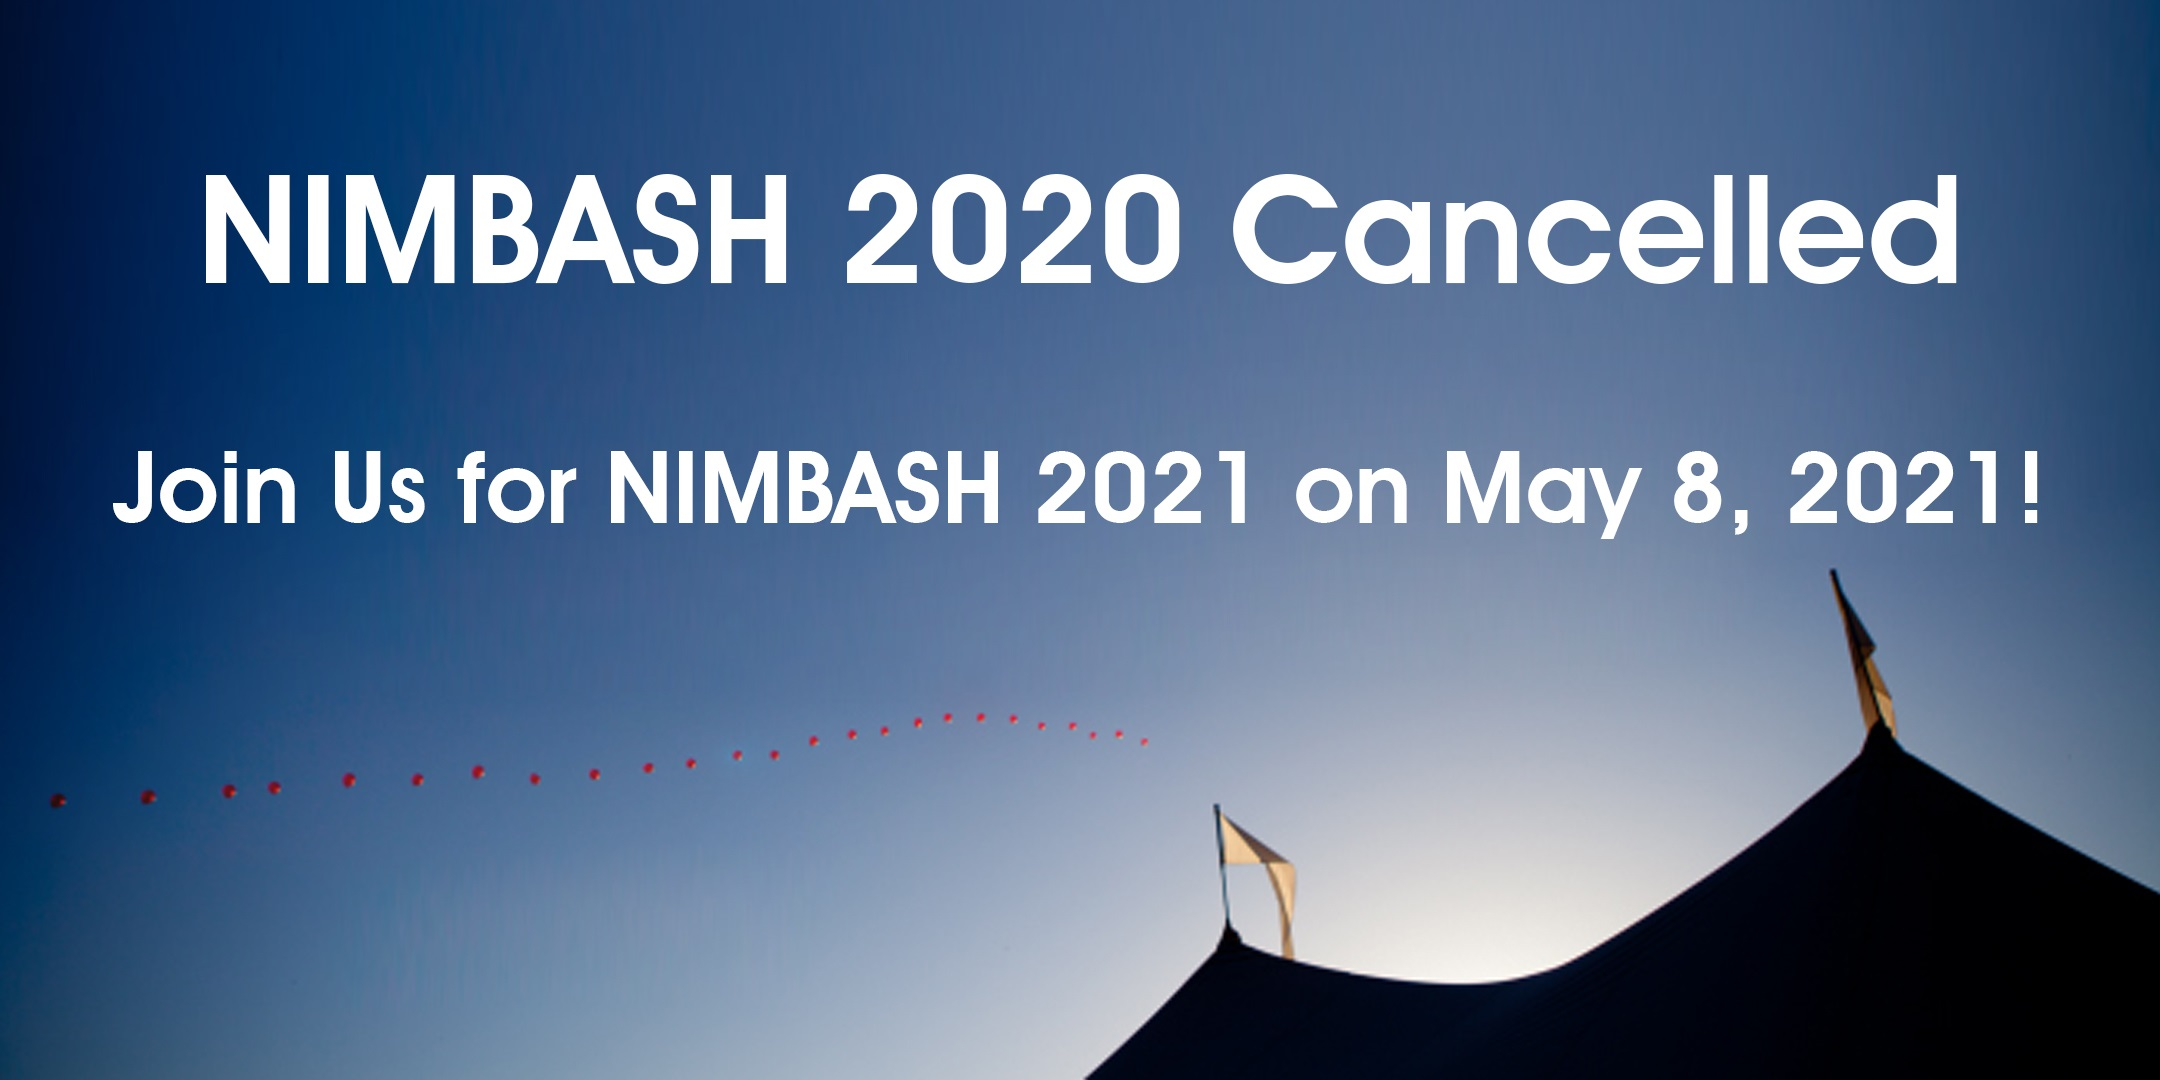 NIMBASH 2020 Is Cancelled, Please Mark Your Calendars For NIMBASH 2021 On May 8, 2021!